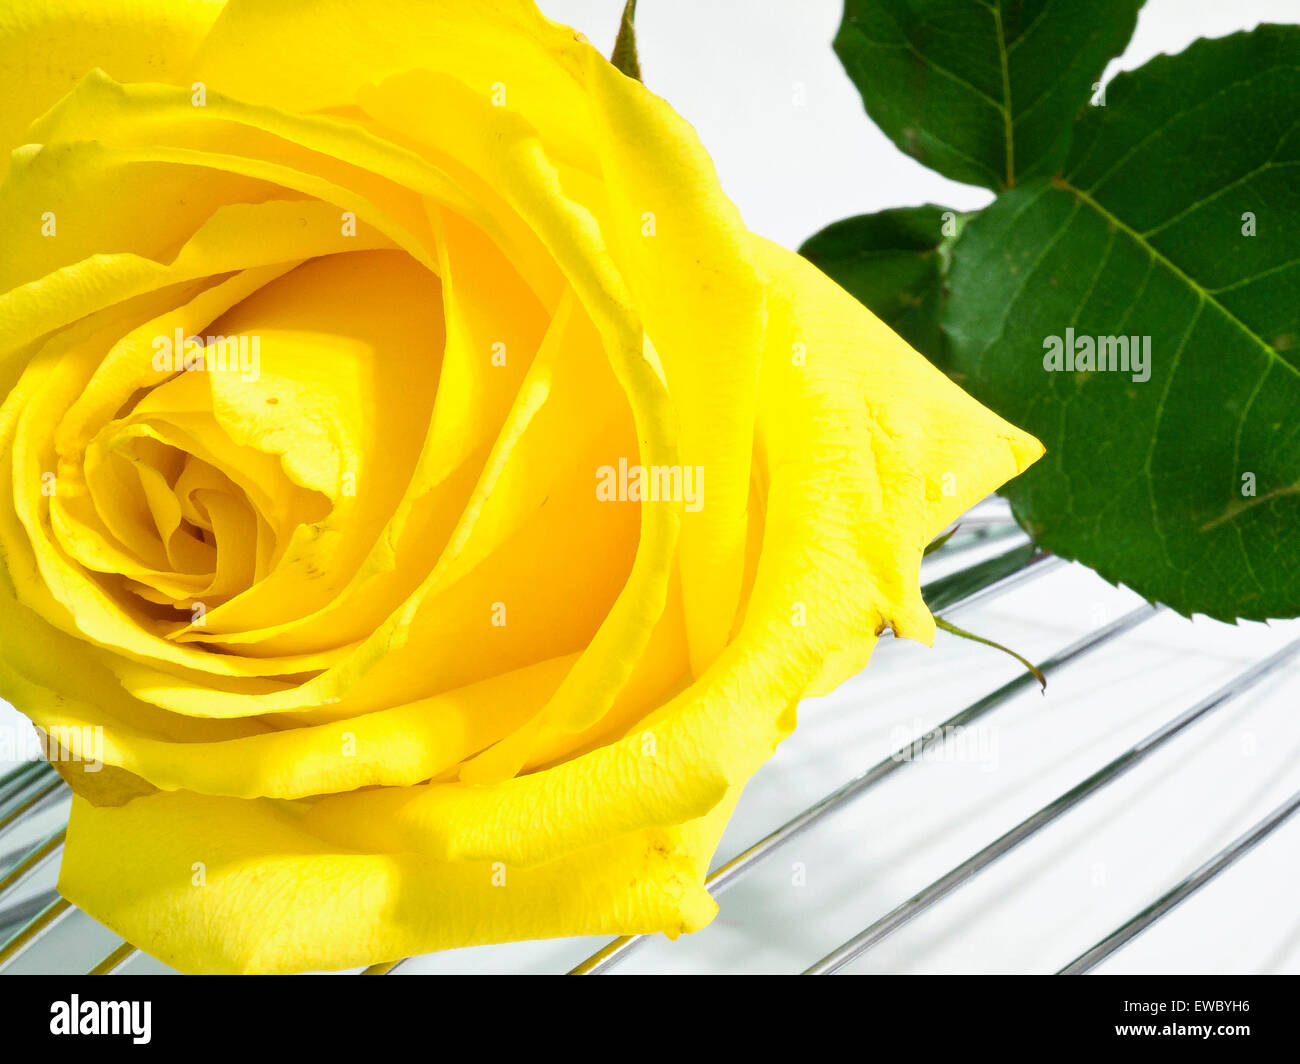 Yellow rose on a metal support Stock Photo